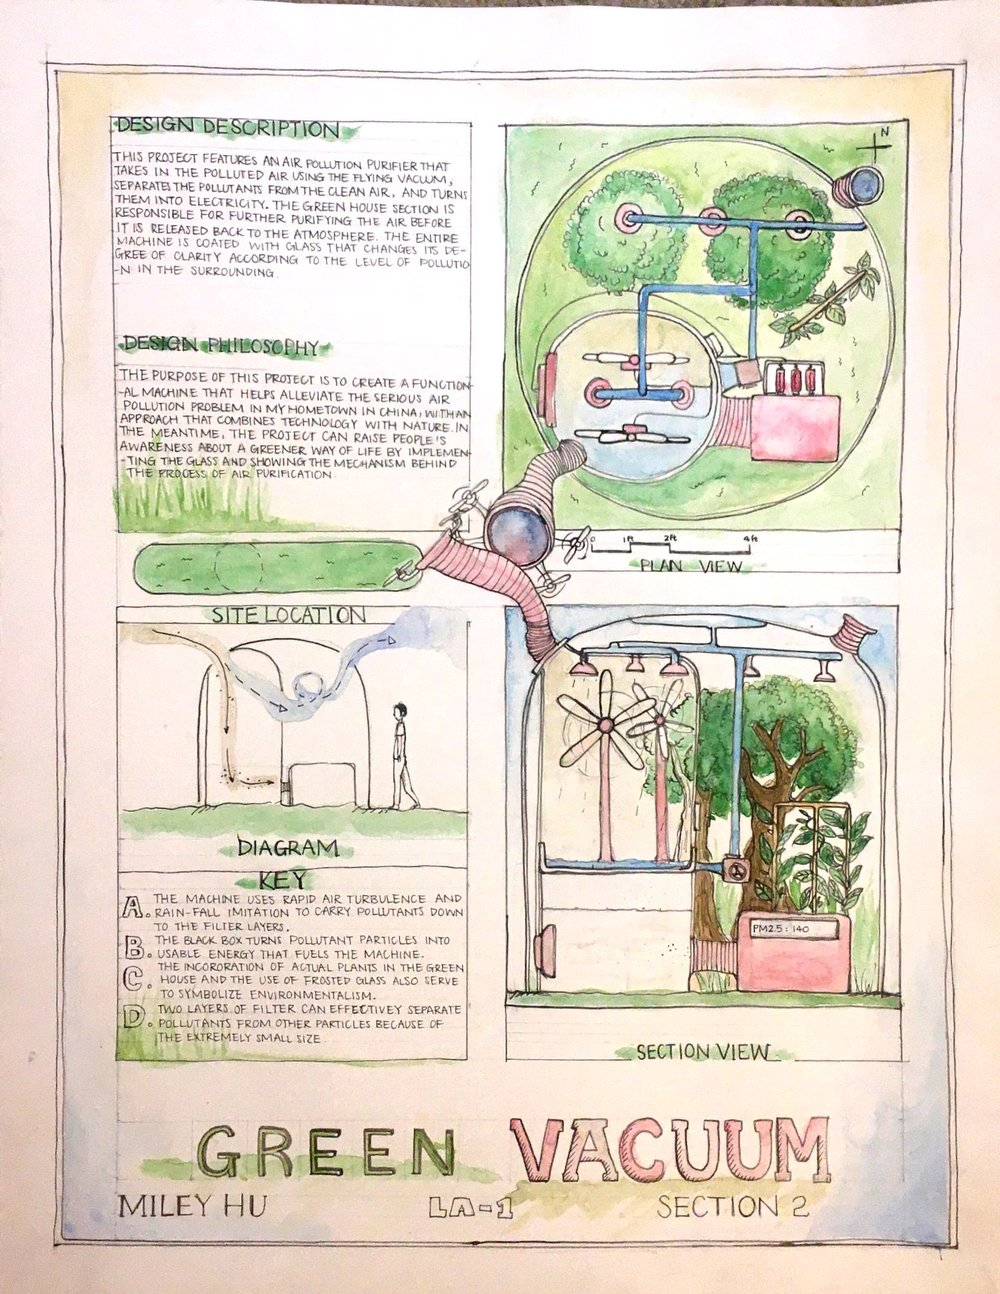 FINAL PROJECT FOR MY LANDSCAPE ARCHITECTURE CLASS: a green vacuum that can hopefully take away the pollution in my hometown :<